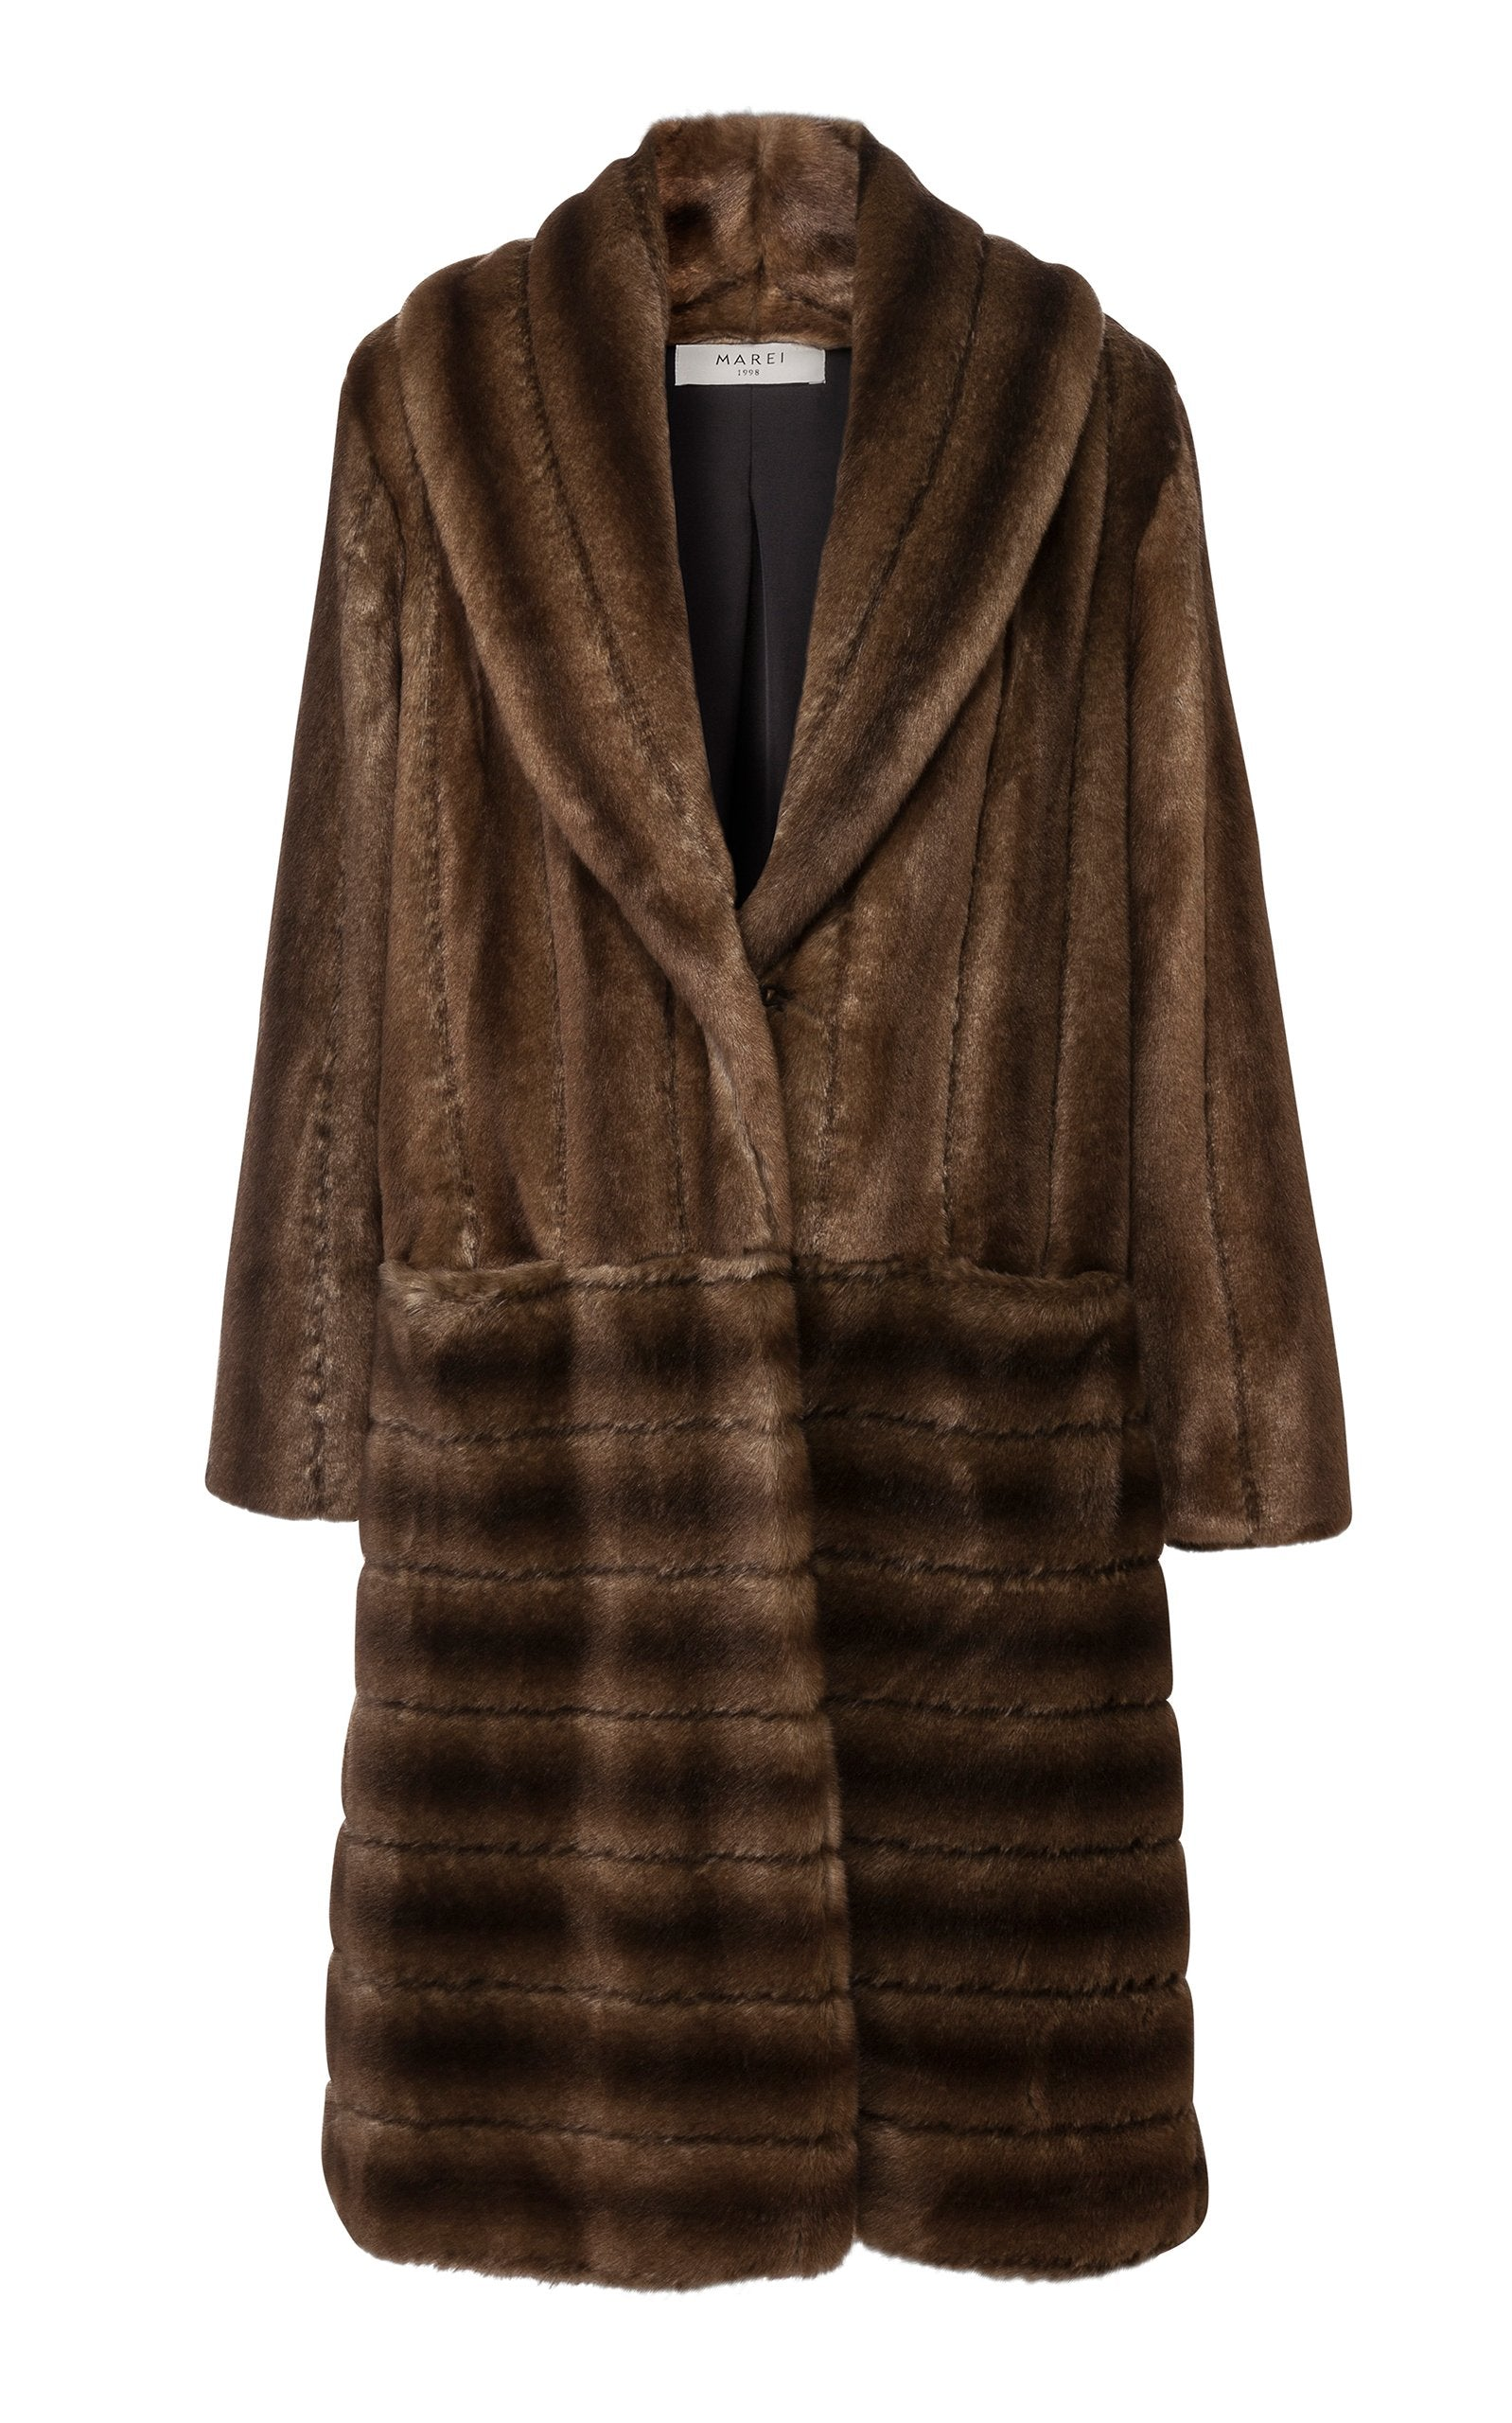 A Packshot Of Marei1998's Labiatae Faux Fur Coat In Classic Brown Color. Made From Plush Faux Fur, Which Feels So Warm And Comfortable. Cut In A Slight A-Line Shape And Fully Lined, It Is Ideal For Smooth Layering. Timeless Winter Investment. Front View.